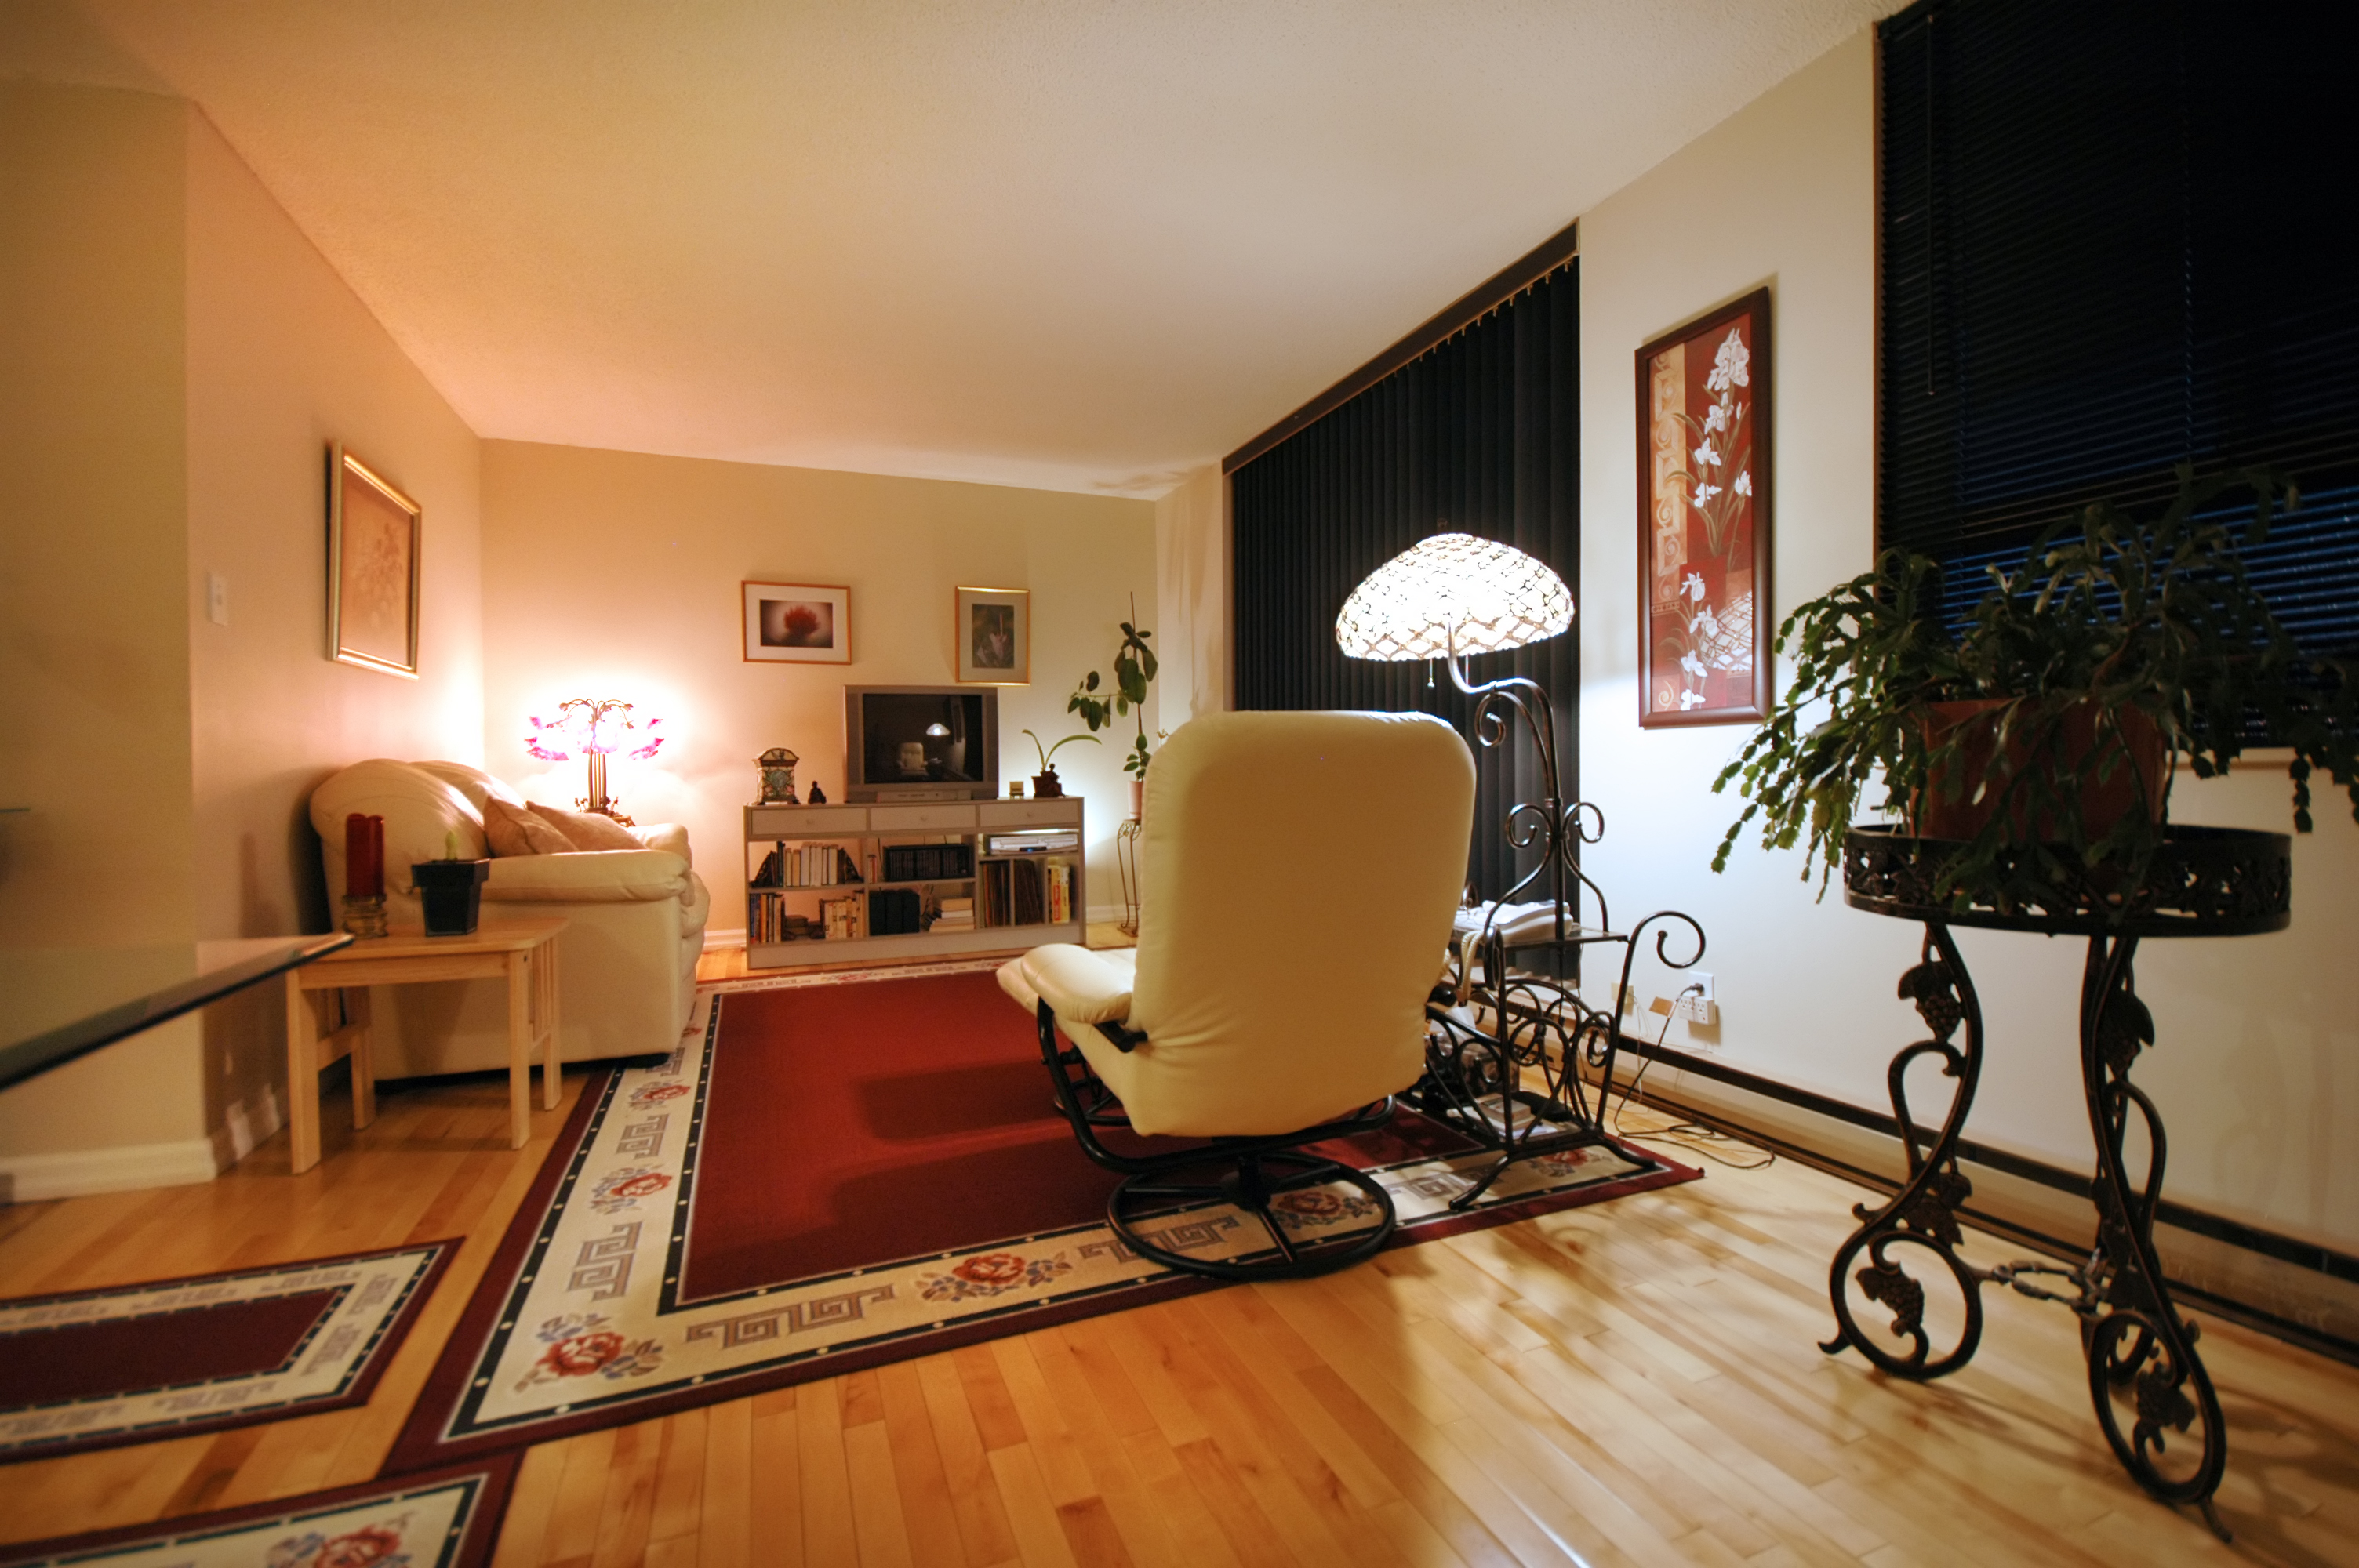 Hardwood Floors Living Room Model Best Www.ventnortourismi201508Awesomelivingro. Inspiration